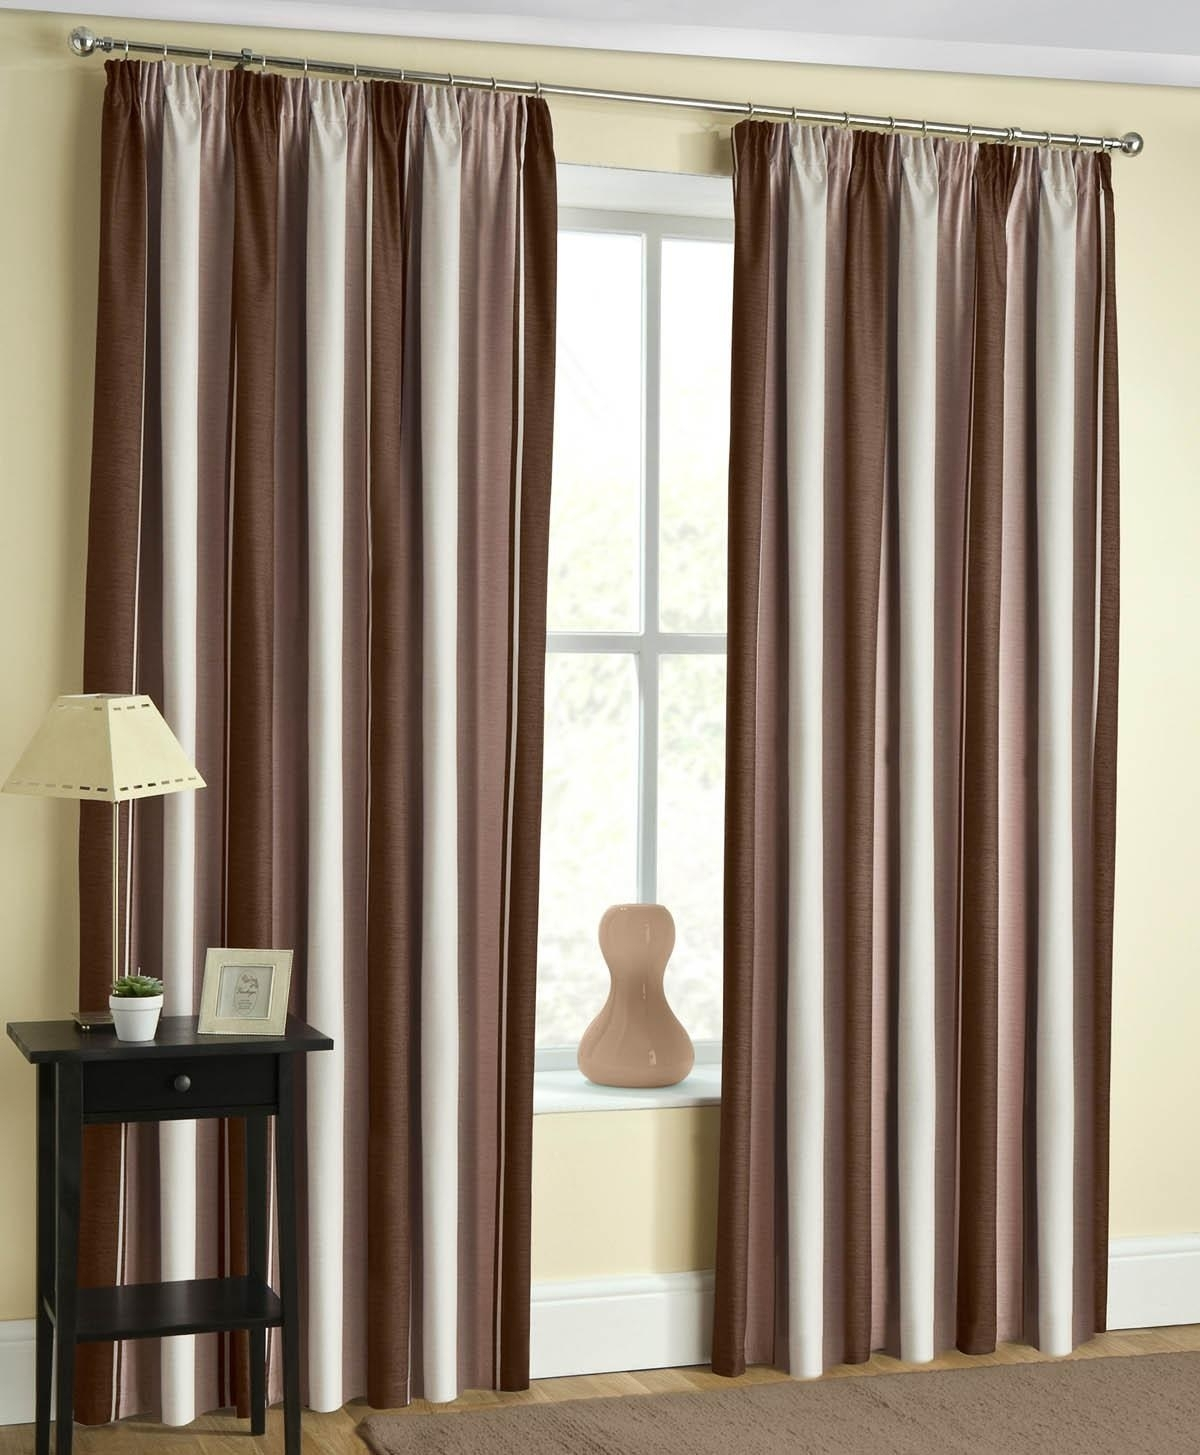 Curtain Blackout Curtains 96 Inches Longhome Design Ideas With 96 Inches Long Curtains (Image 7 of 25)